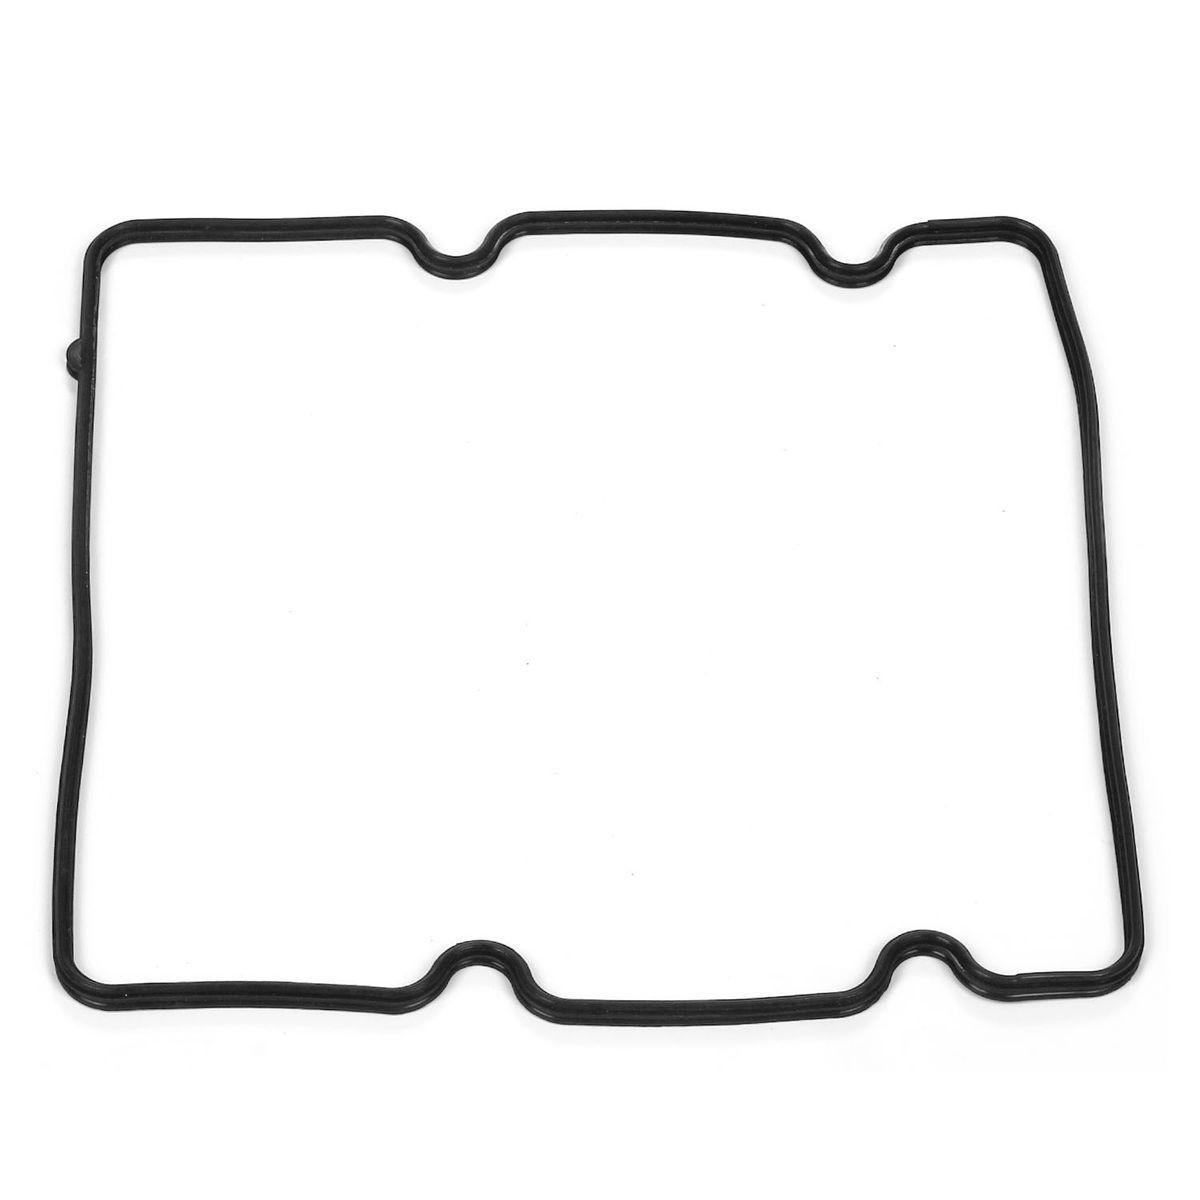 High Pressure Oil Pump Cover Gaskets For Ford F250 F350